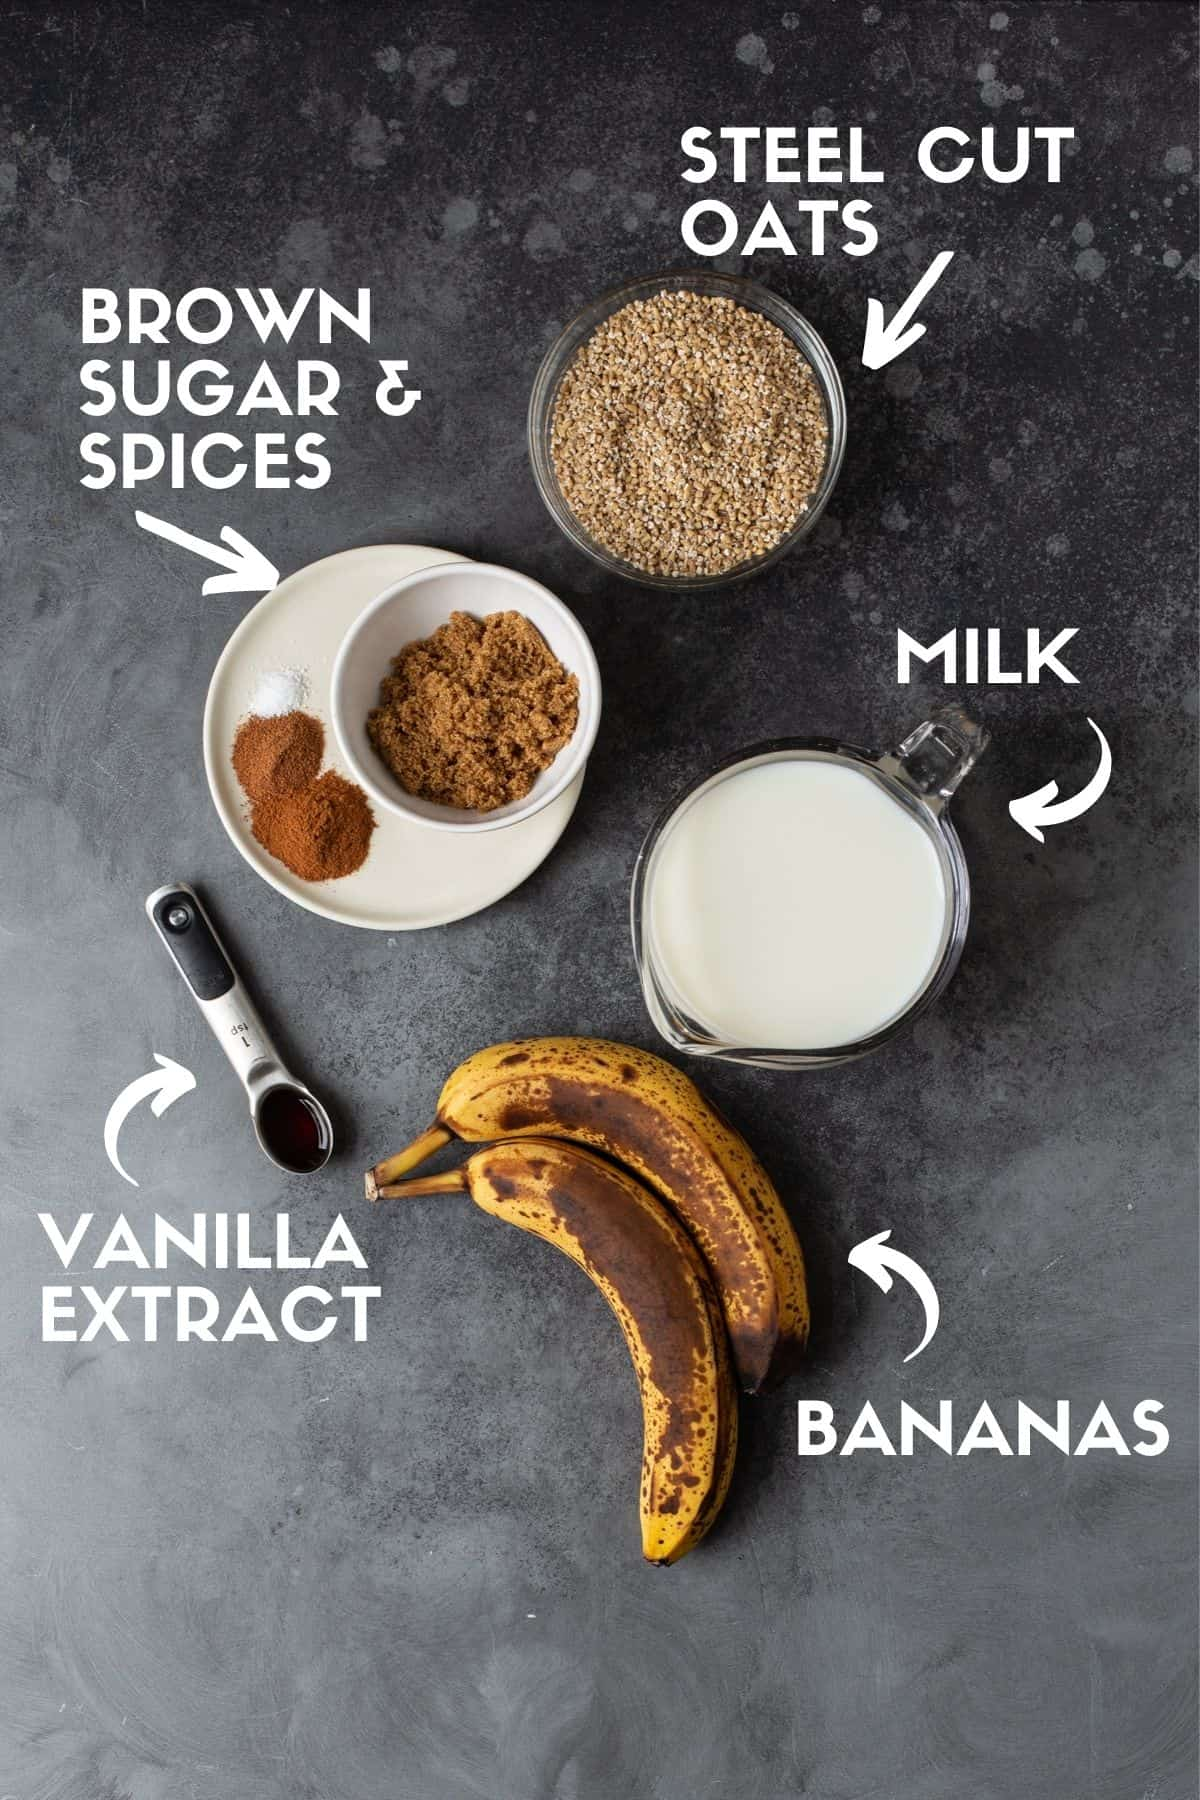 Ingredients for oatmeal, including steel cut oats, bananas, milk, sugar & spices.